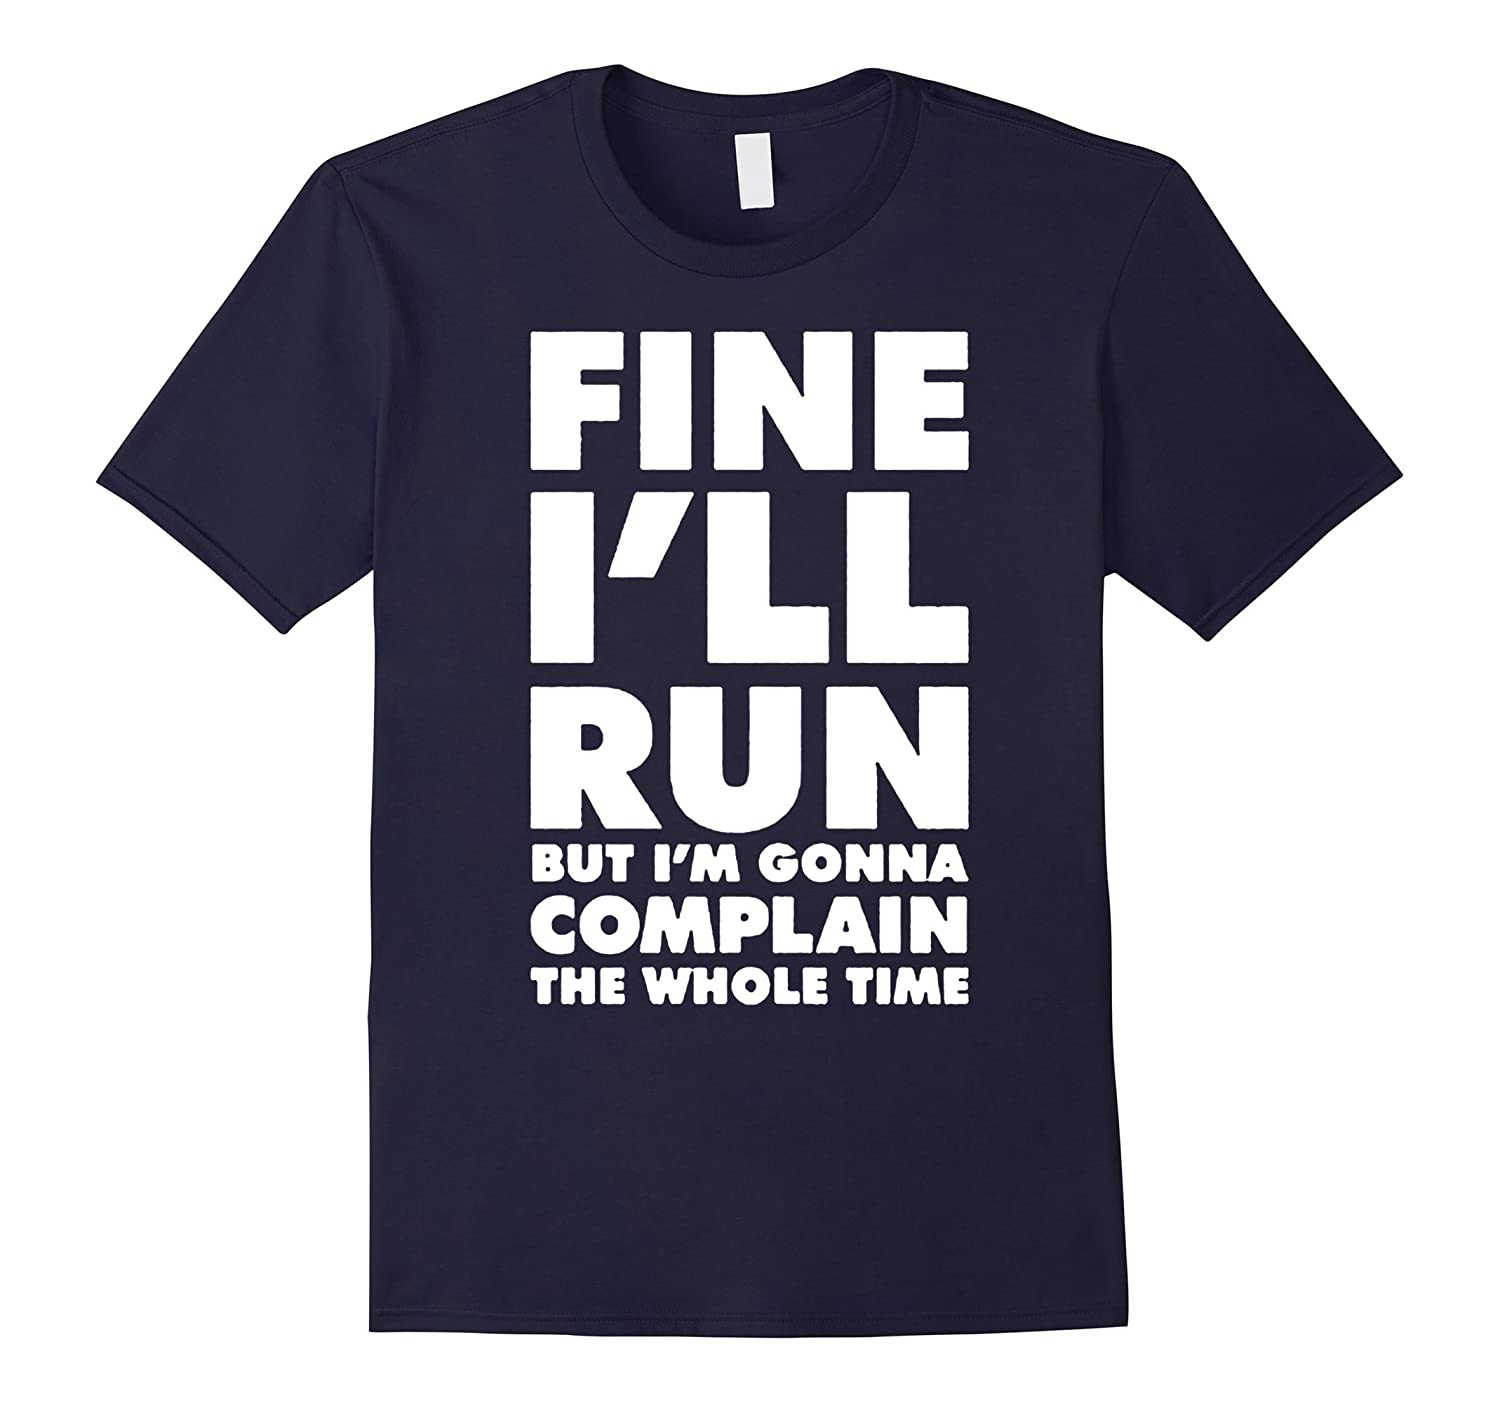 FINE I'LL RUN BUT I'M COMPLAINING THE WHOLE TIME T-SHIRT-TH